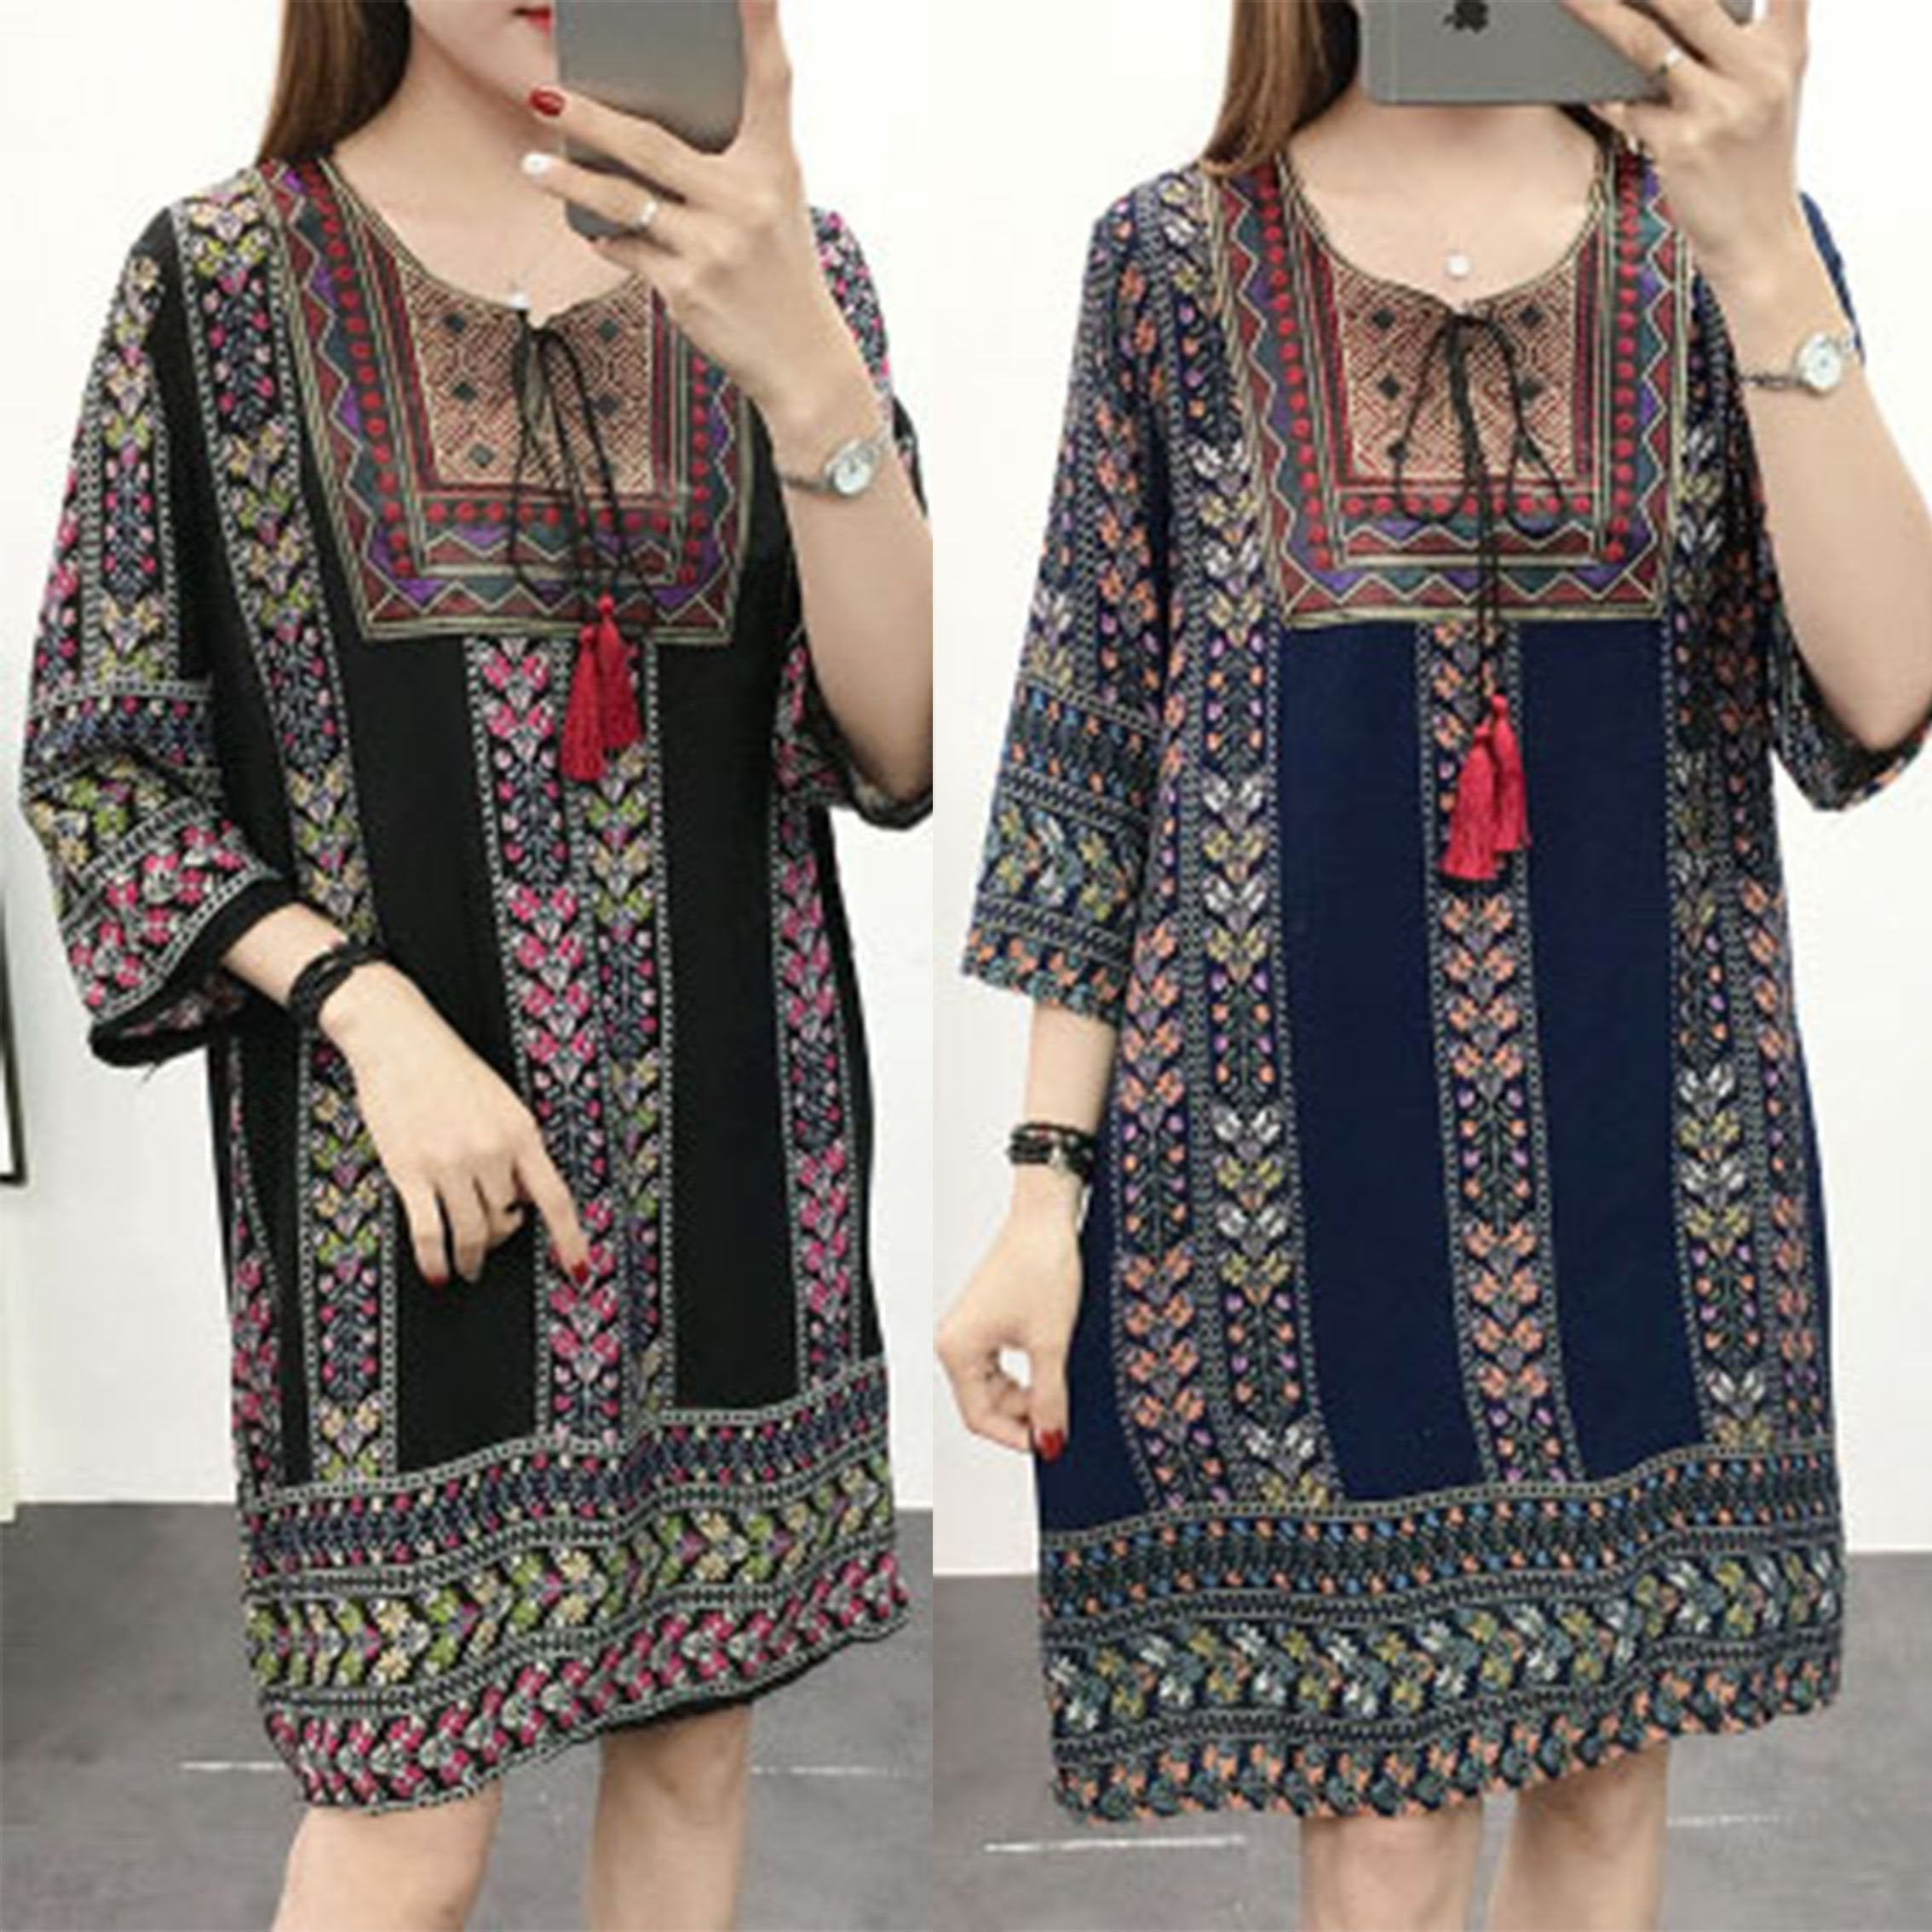 【Buy 1 free 1】Ethnic style cotton silk loose rope print dress